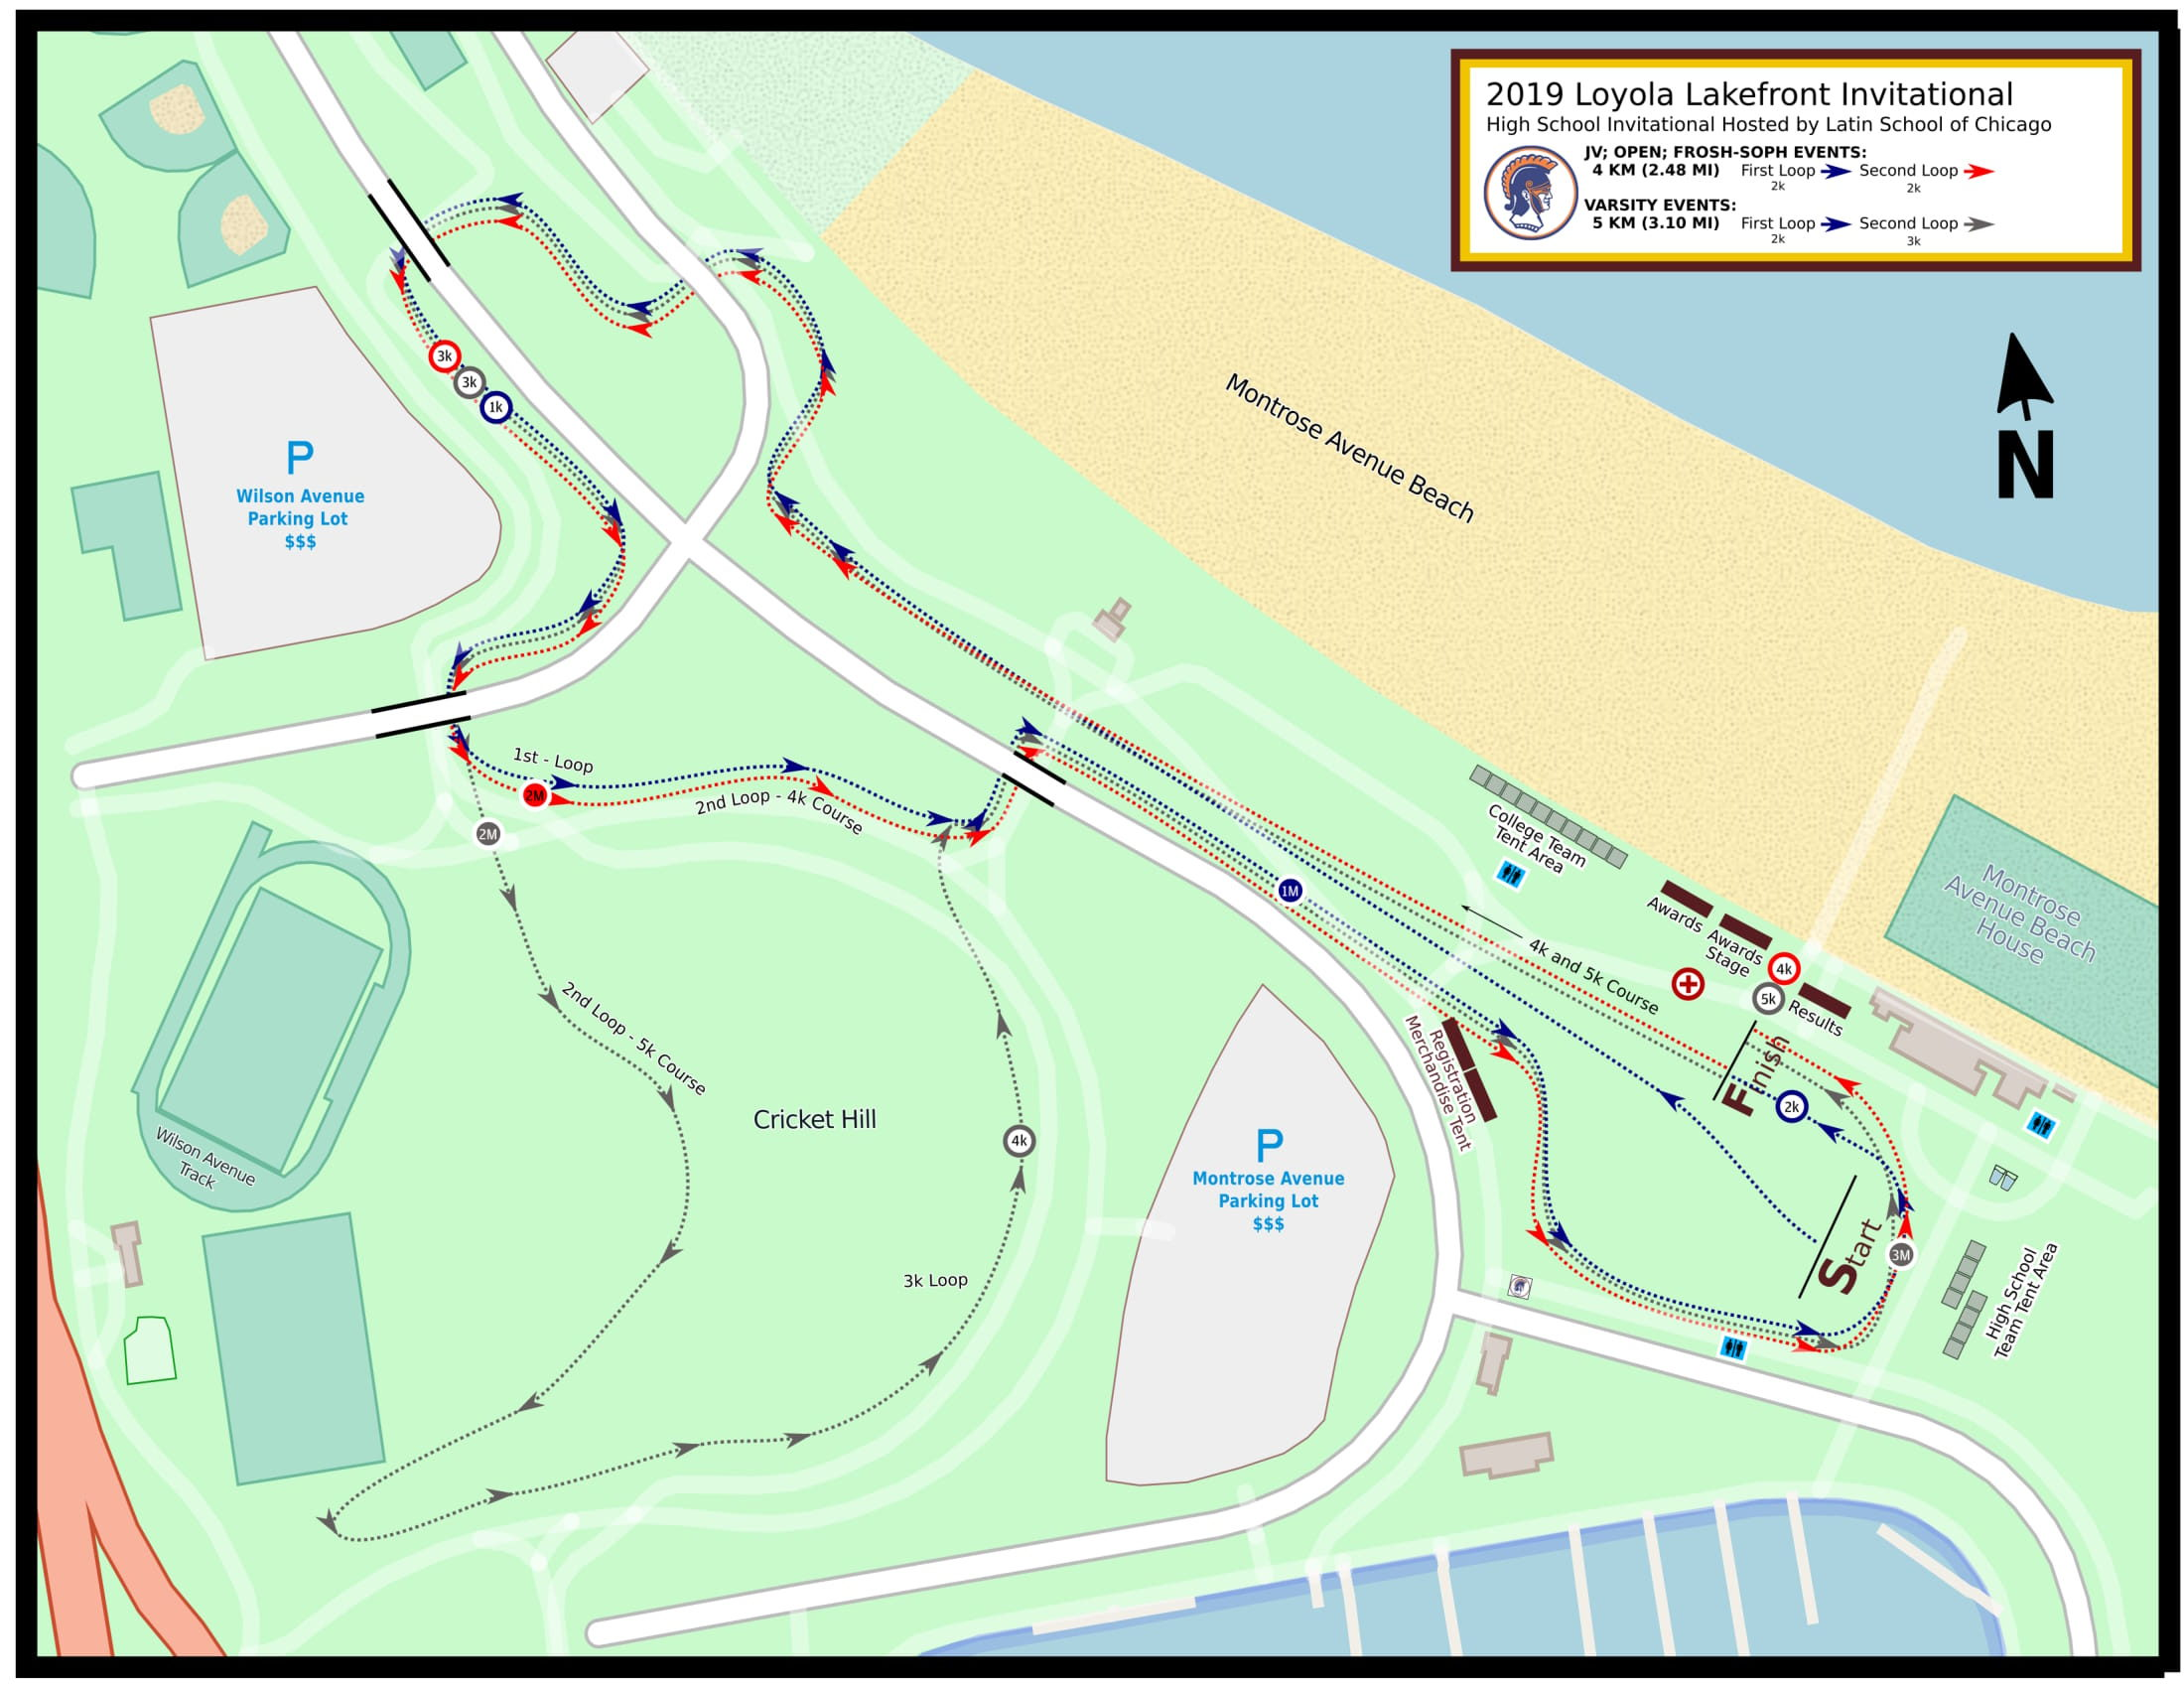 Course Map for the 2019 Loyola Lakefront Cross County Invitational - High School Division